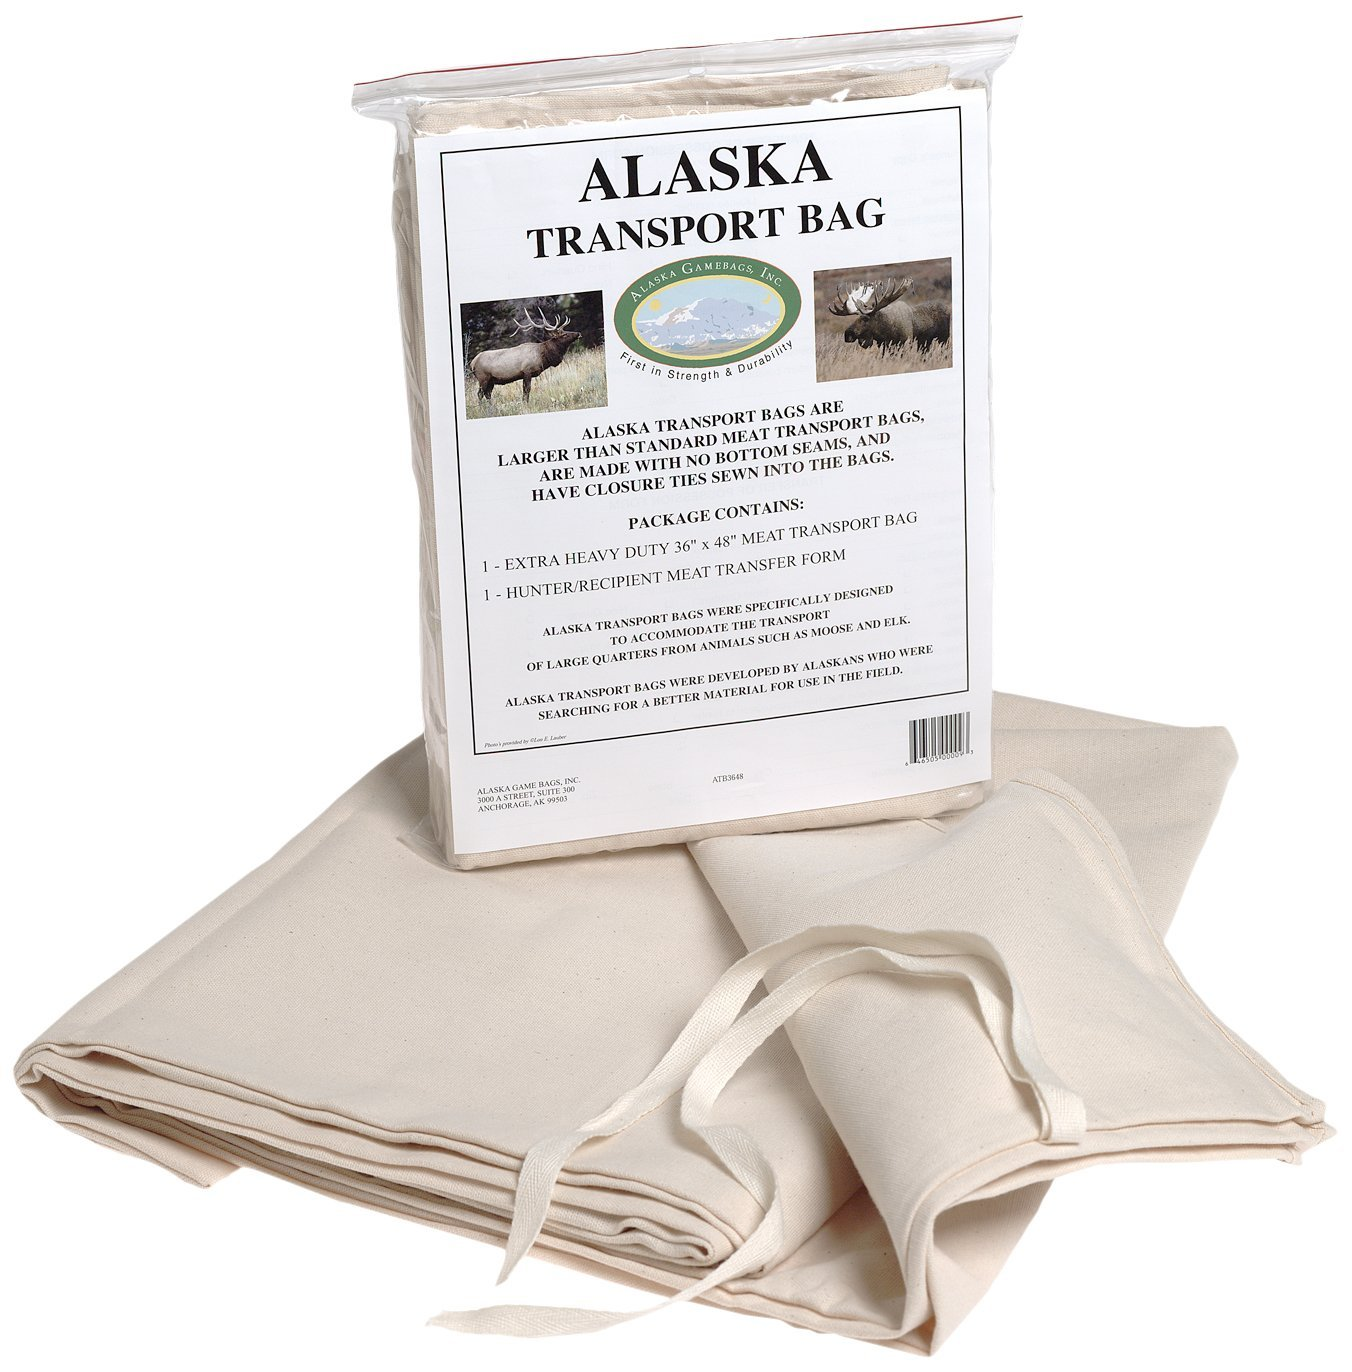 Alaska Game Alaska Moose/Elk/Bear Hide Transport Bag, 36X48-Inch